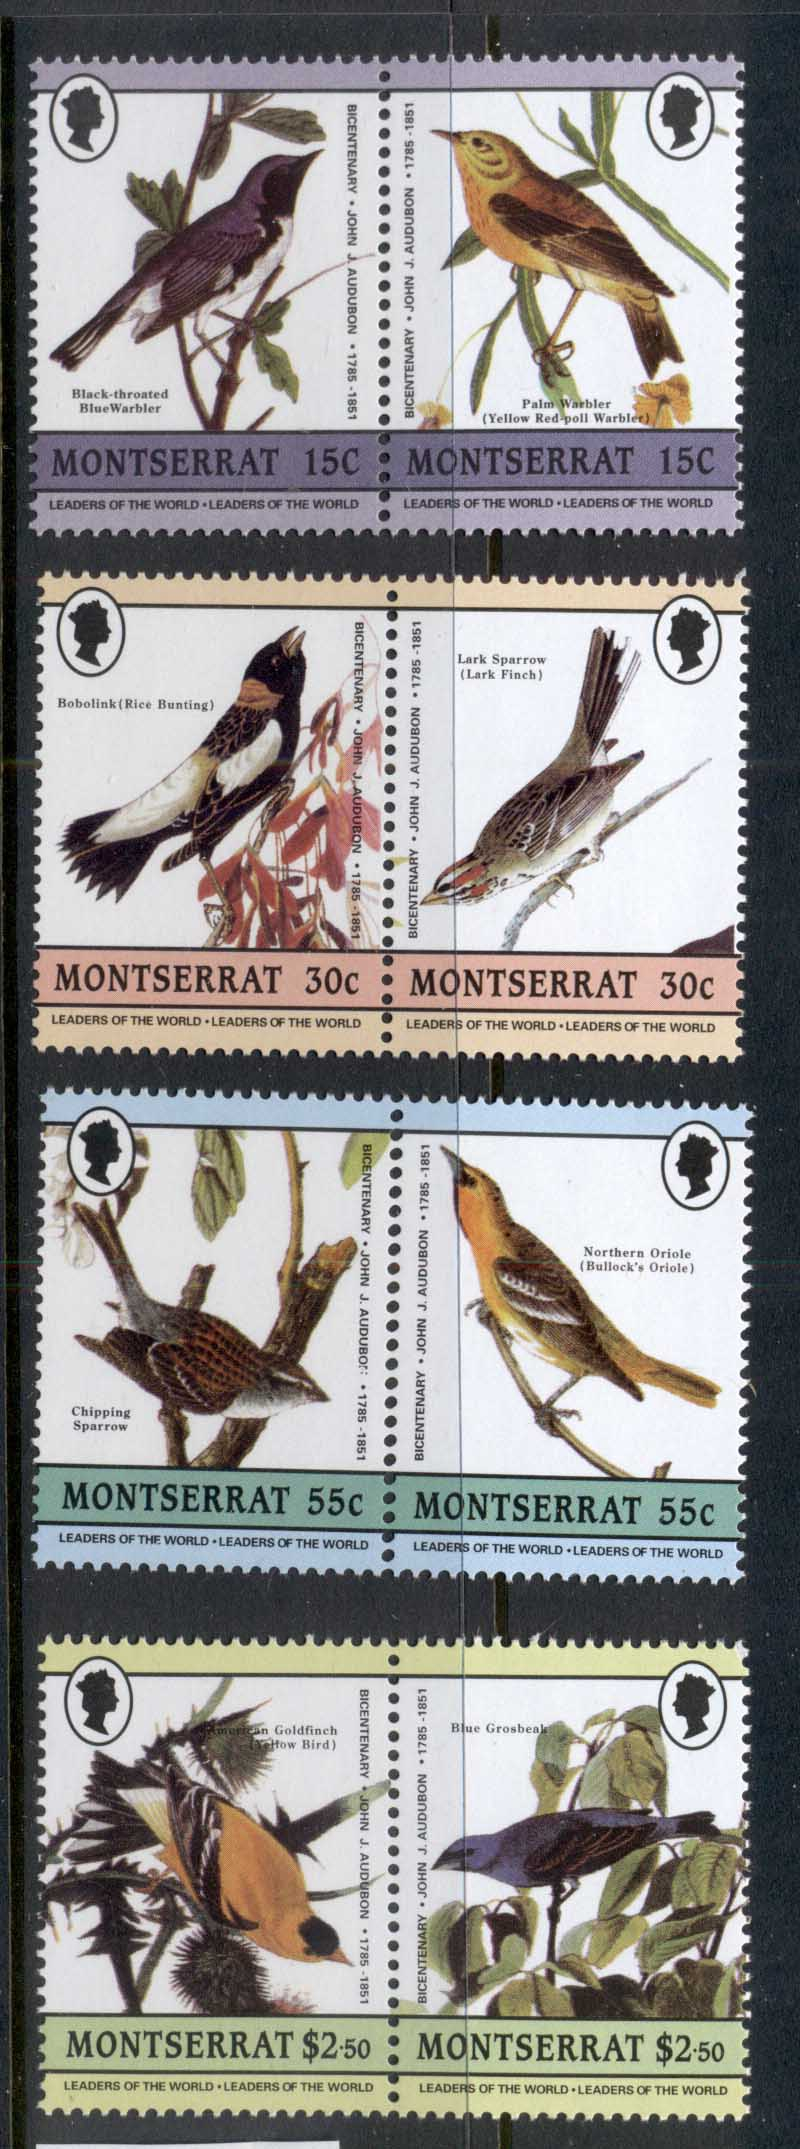 Montserrat 1985 LOW Audubon Birds MUH REPRODUCTIONS Forgeries